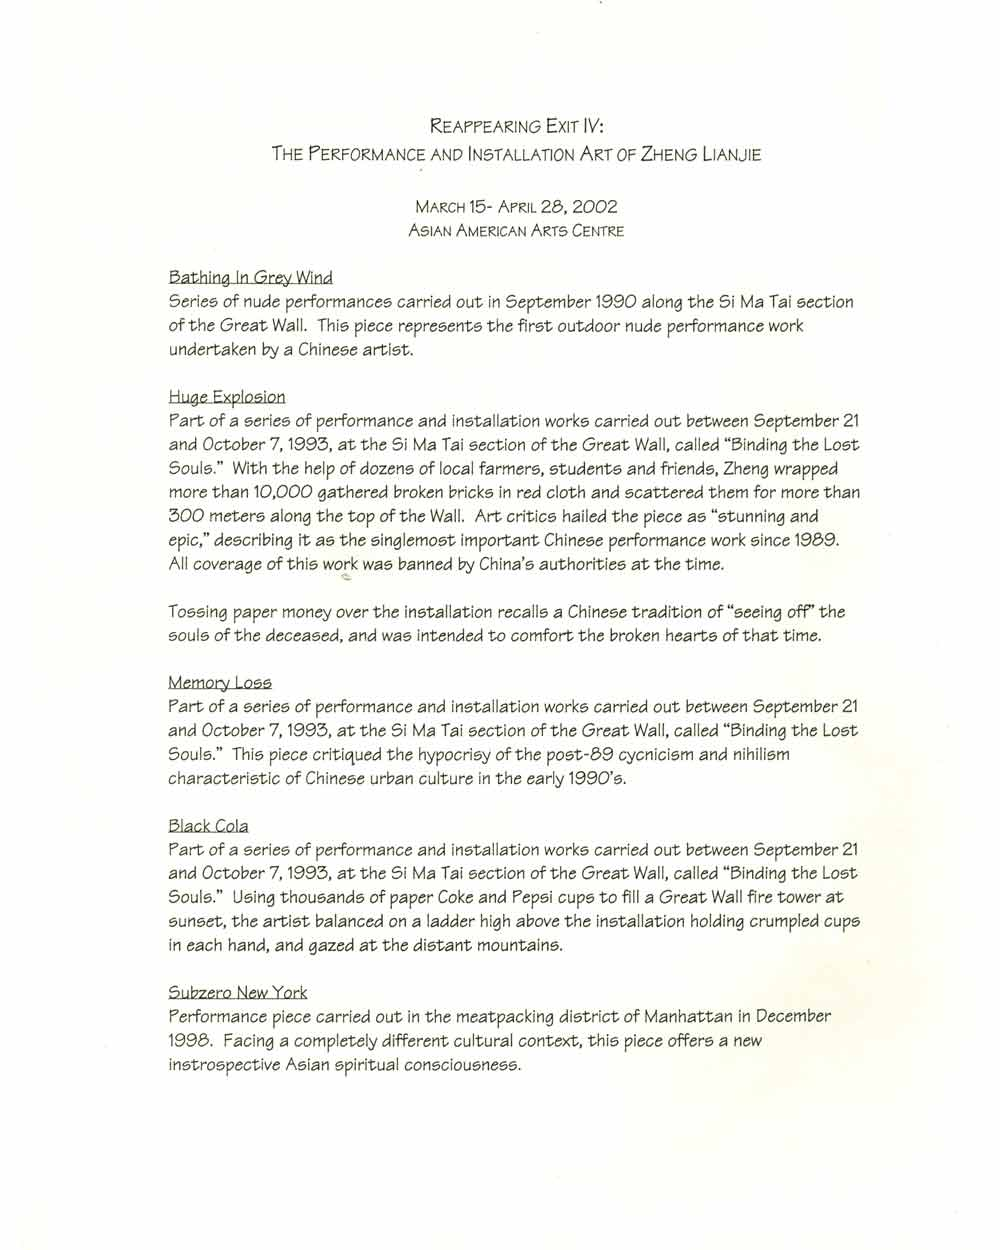 Reappearing Exit IV, artist description, pg 1